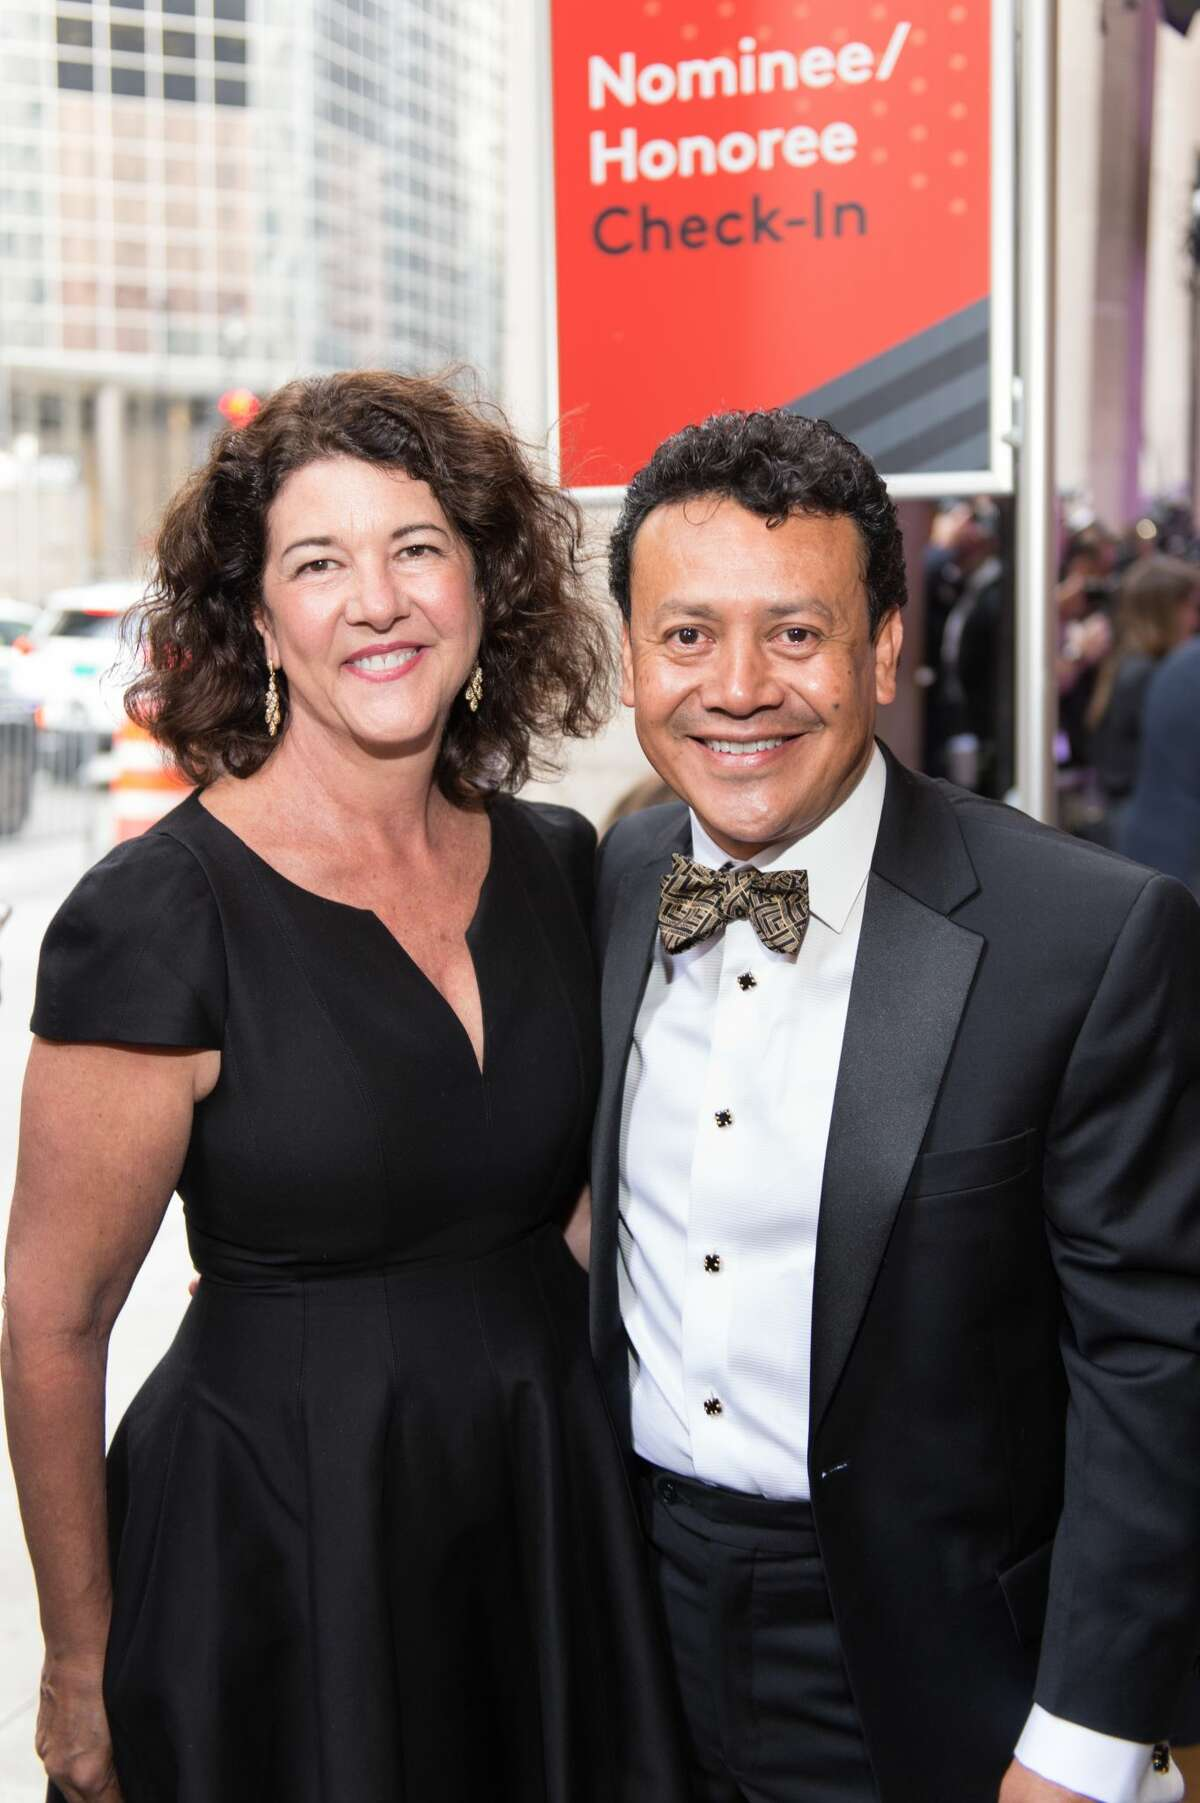 Tracy Vaught and Hugo Ortega own a number of restaurants including Hugo's, Caracol and Xochi.